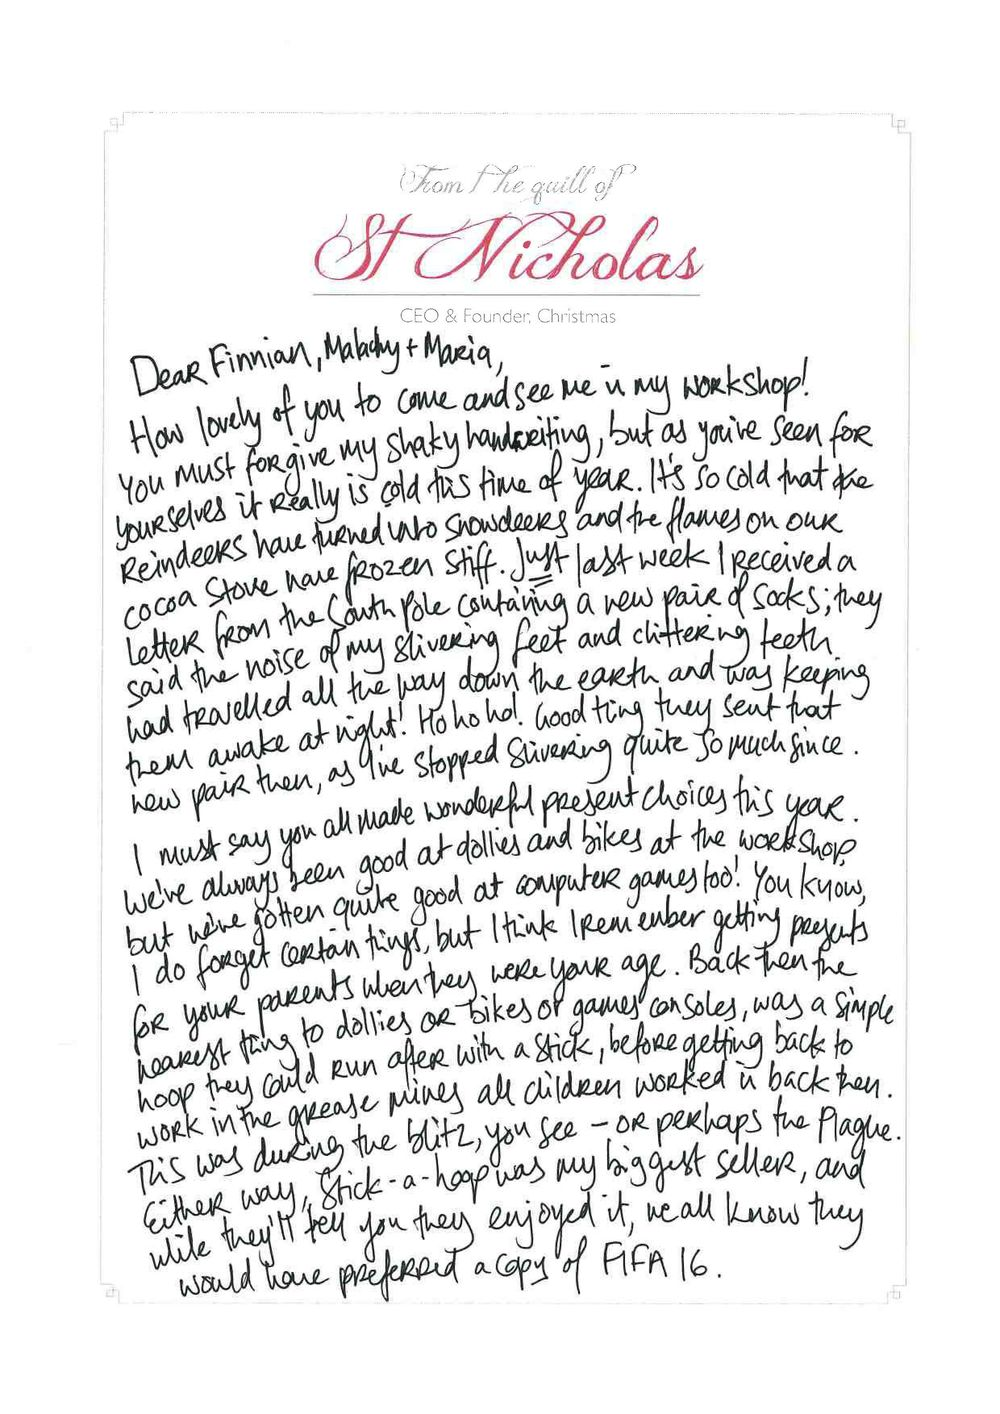 Santa letters shocko i got my siblings to send me photos of their letters to santa before they went up the chimney or what have you so i had idea of what they were expecting spiritdancerdesigns Images